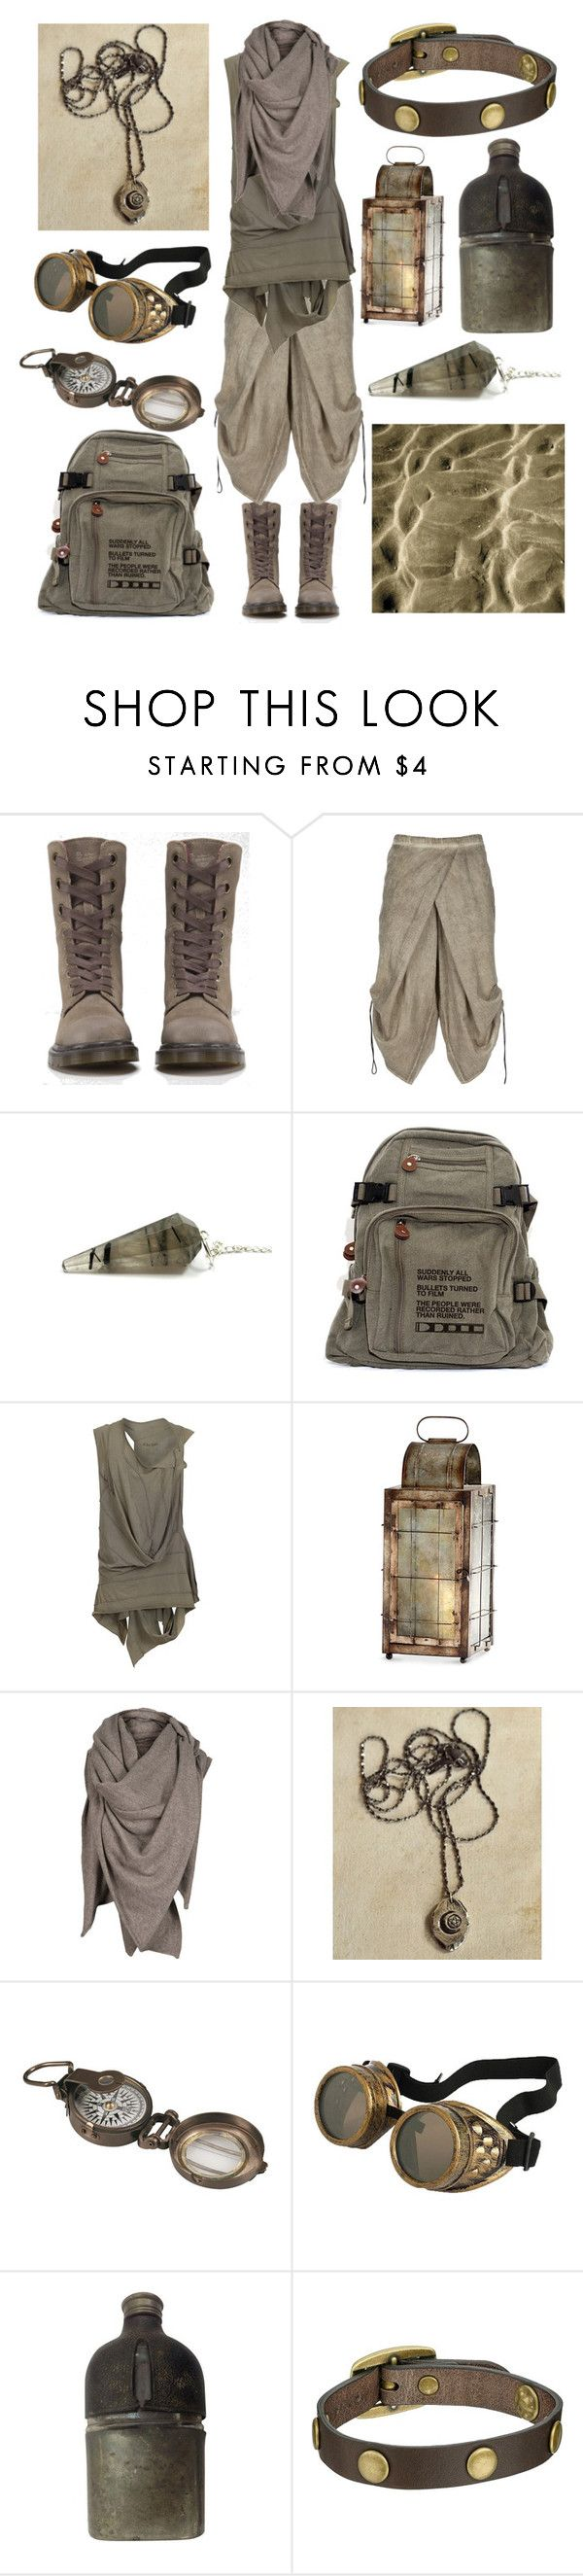 Desert Nomad by maggiehemlock on Polyvore featuring AllSaints, Lumen et Umbra, Dr. Martens, Frye, Cyan Design and Dot & Bo